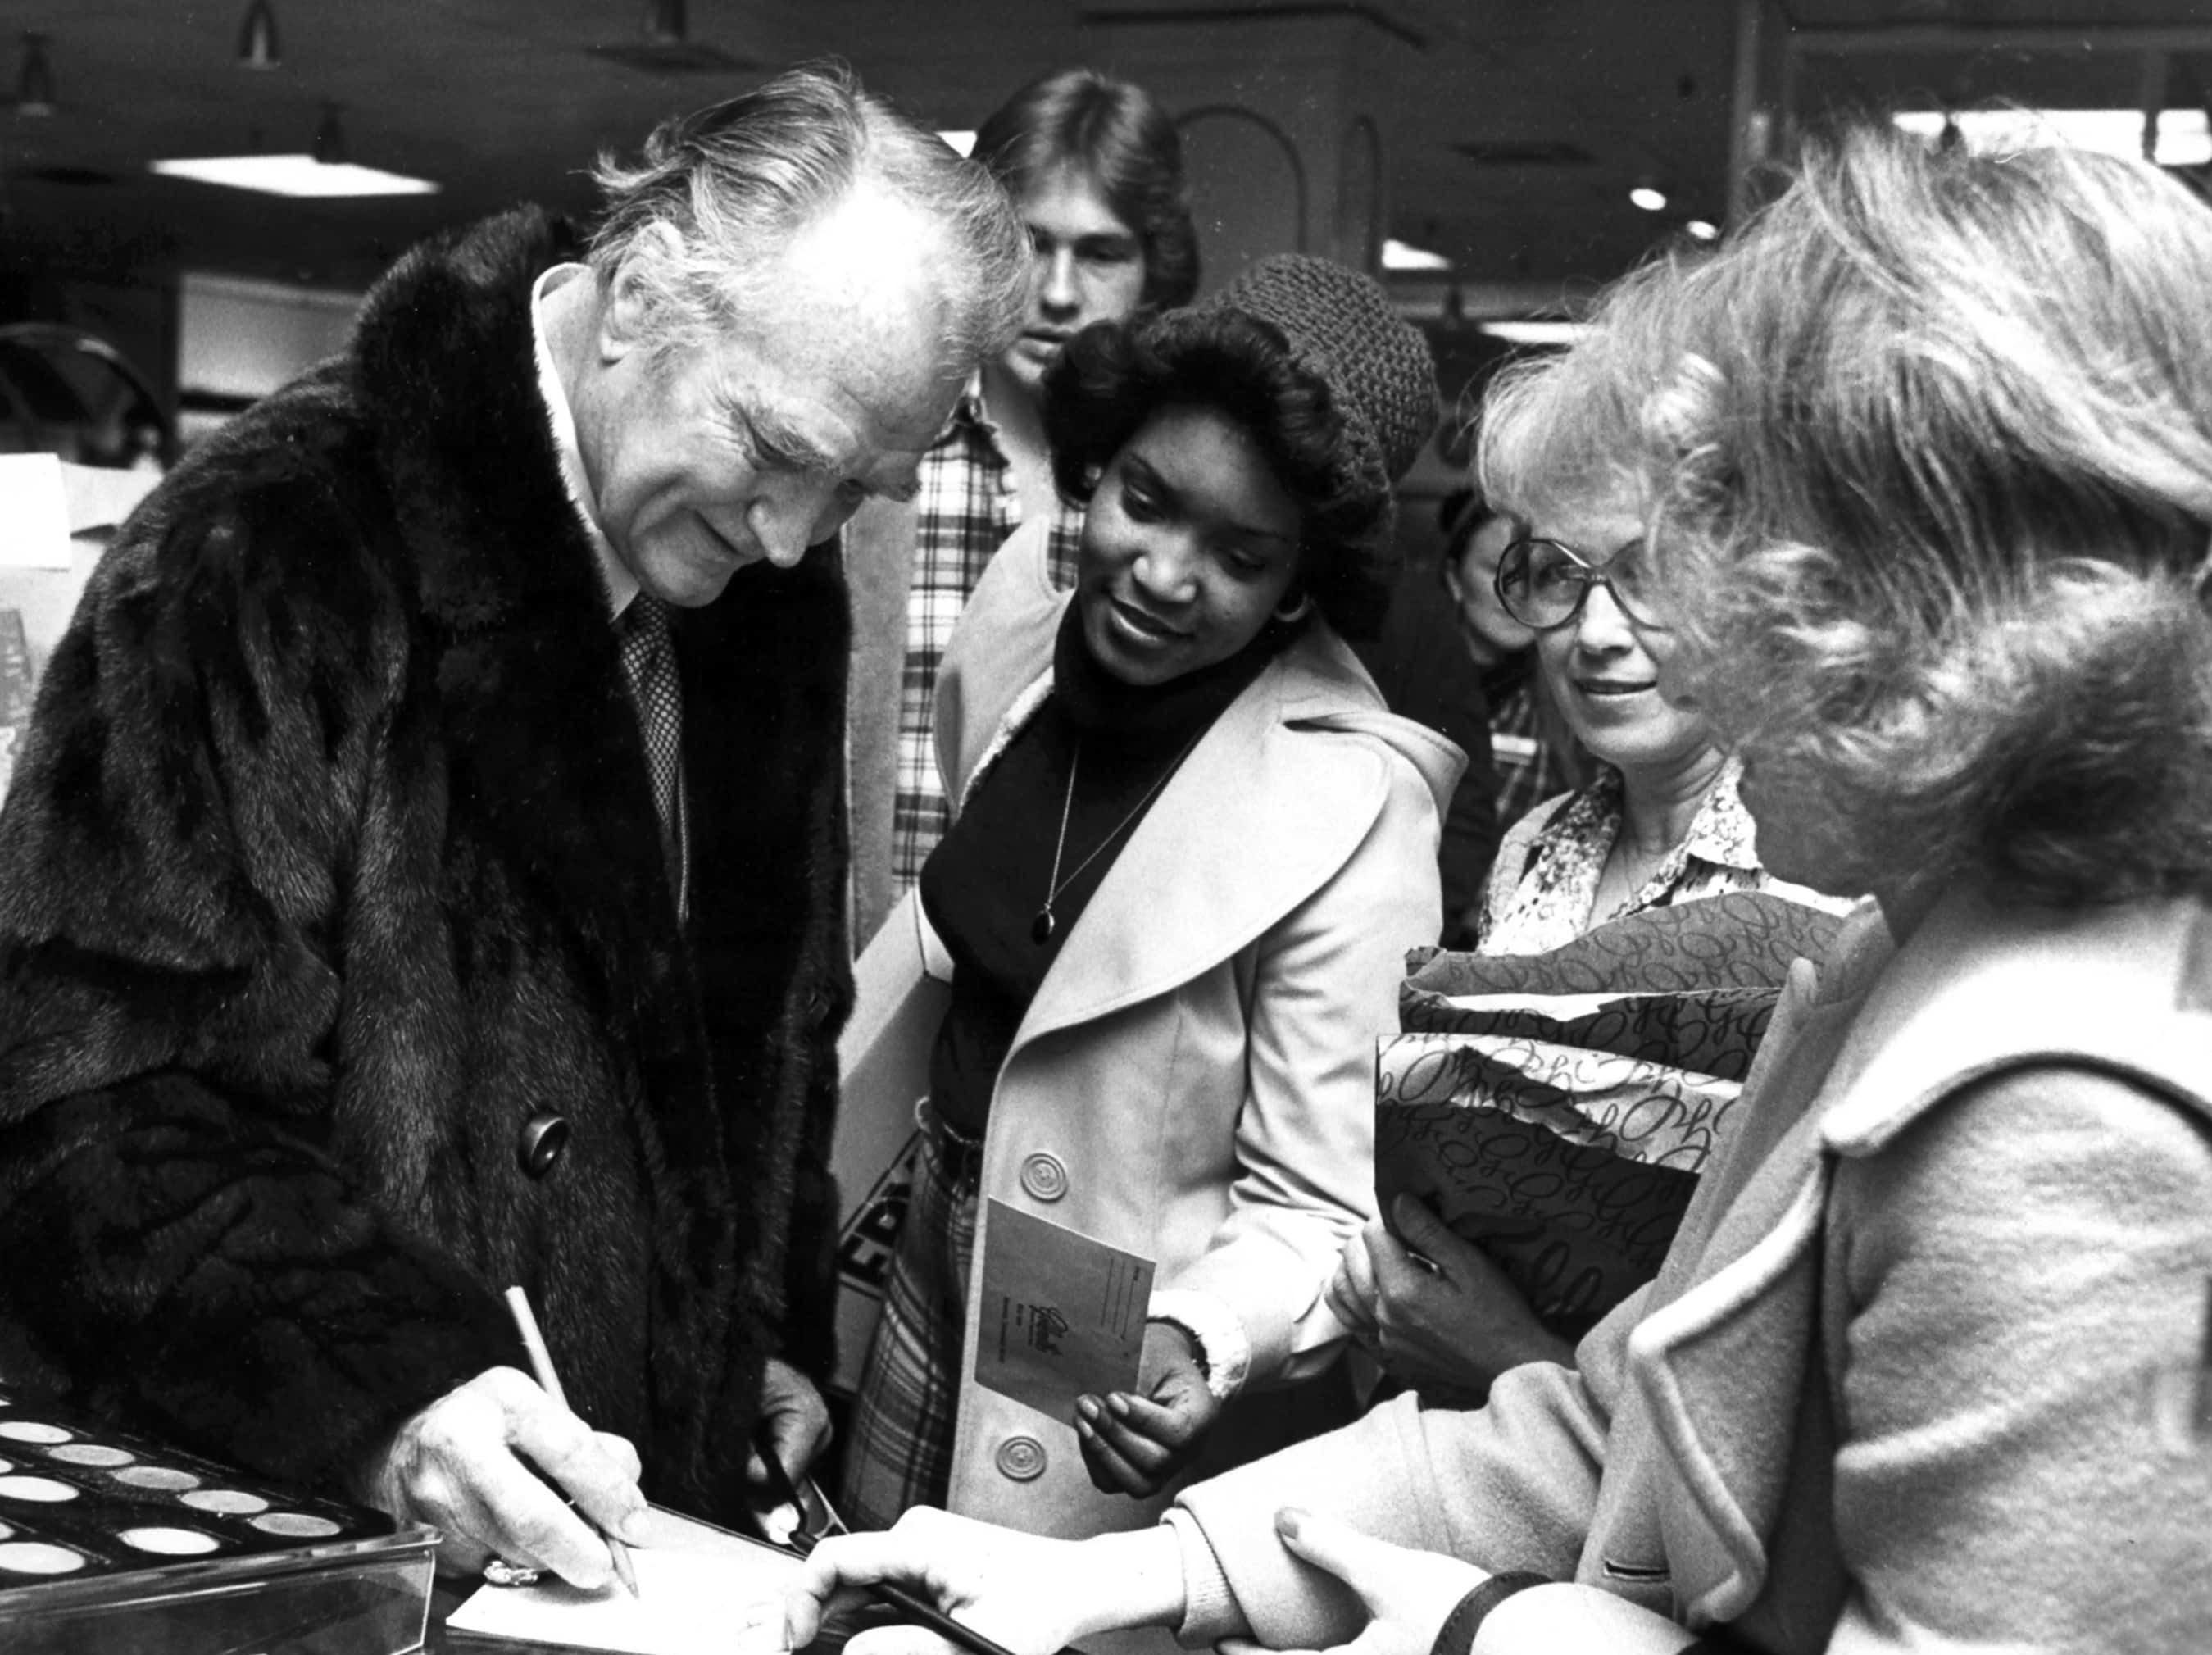 """February 7, 1979 - Red Skelton signs autographs for fans during a surprise appearance at Southland Mall on Feb. 7, 1979. He was at the mall to """"meet the people,"""" pose for photographs and do a little shopping. The 65-year-old comedian was in town for a performance at The Auditorium Dixon-Myers Hall."""